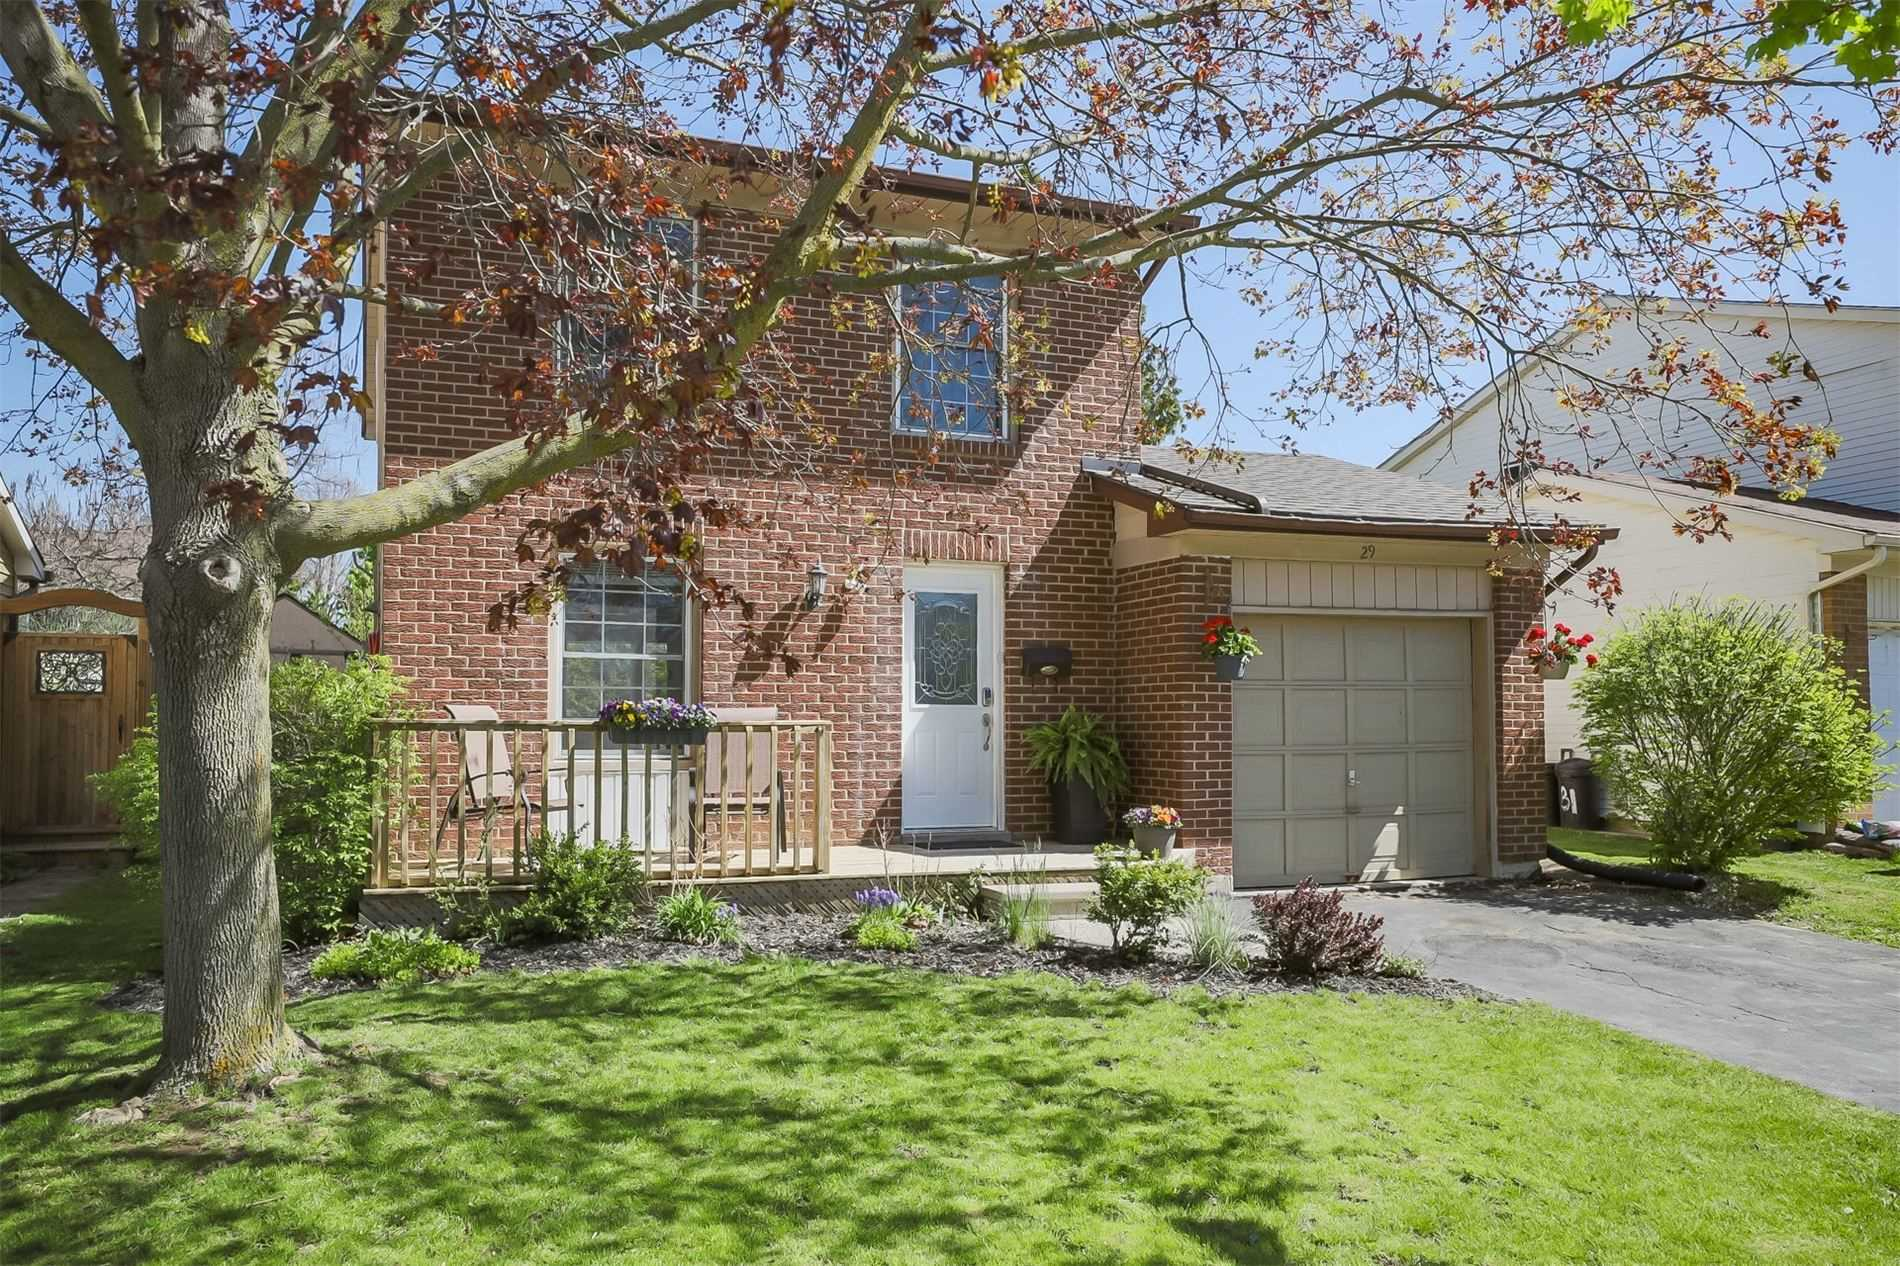 29 Gaitwin St, Brantford, Ontario N3P 1A9, 3 Bedrooms Bedrooms, 6 Rooms Rooms,2 BathroomsBathrooms,Detached,For Sale,Gaitwin,X4768190